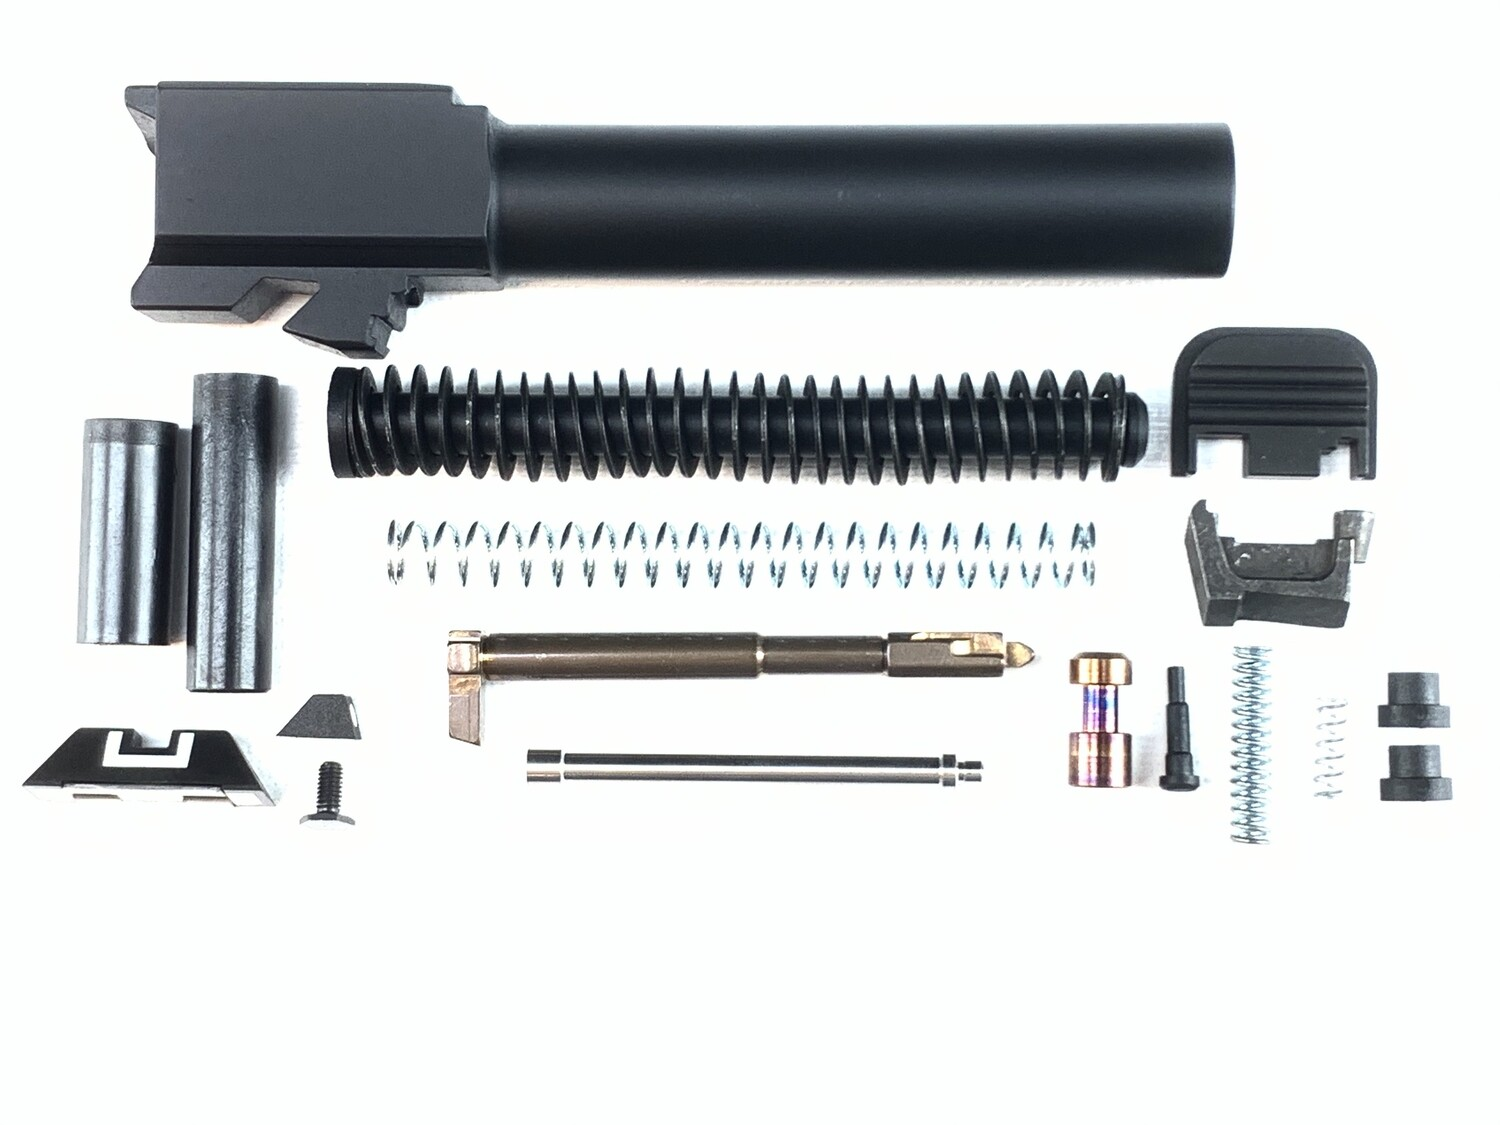 Slide Upper Parts Build Kit - Fits Glock - G19, G17, G26 - Includes Sights, Guide Rod & Barrel